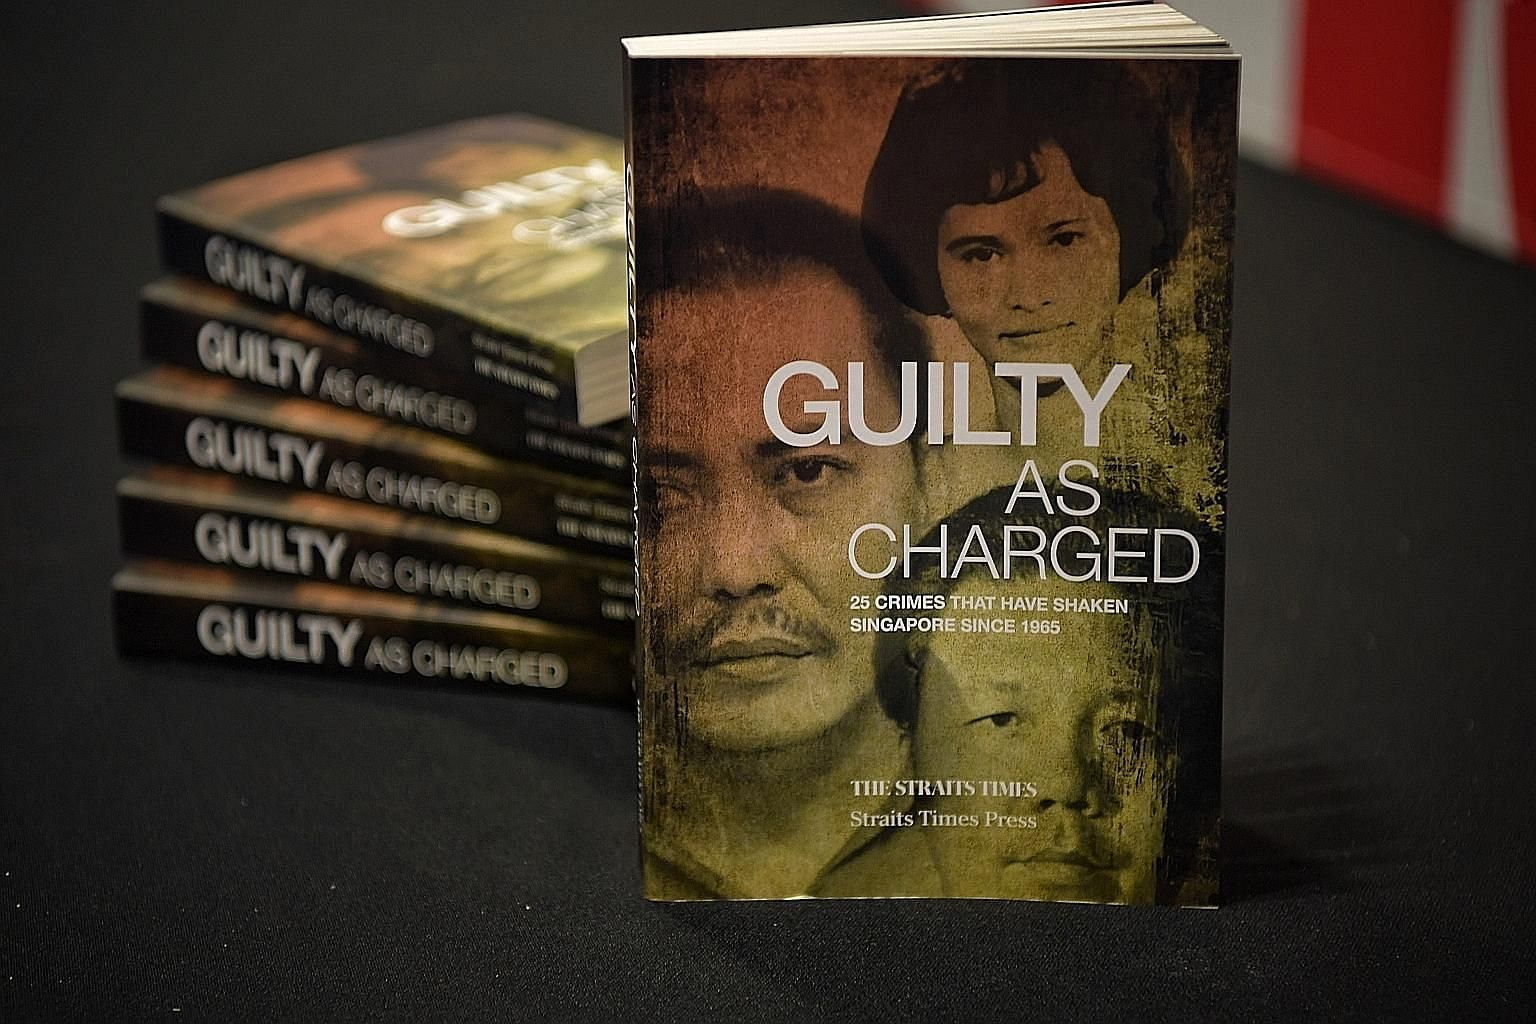 Guilty As Charged, edited by ST associate news editor Abdul Hafiz (above, left), and Singapore, Disrupted by ST Opinion editor Chua Mui Hoong won the first prize and third respectively in the English (adult) category at the Popular Readers' Choice Aw